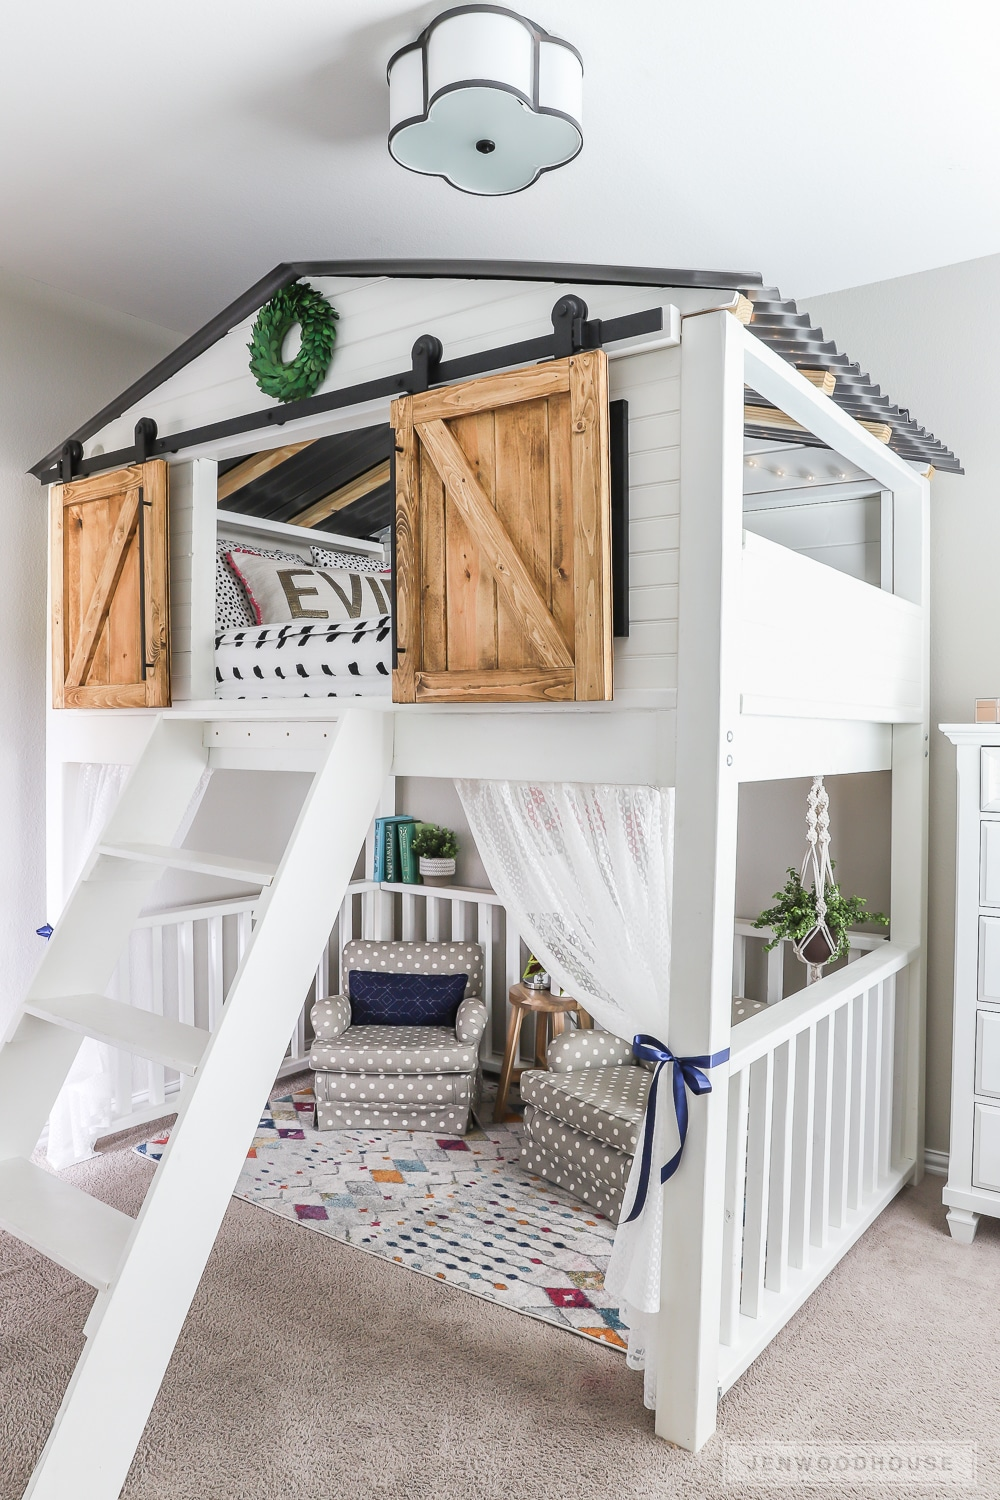 Advantages And Drawbacks Of Strong Wooden Loft Bed With Stairs How to build a DIY sliding barn door loft bed